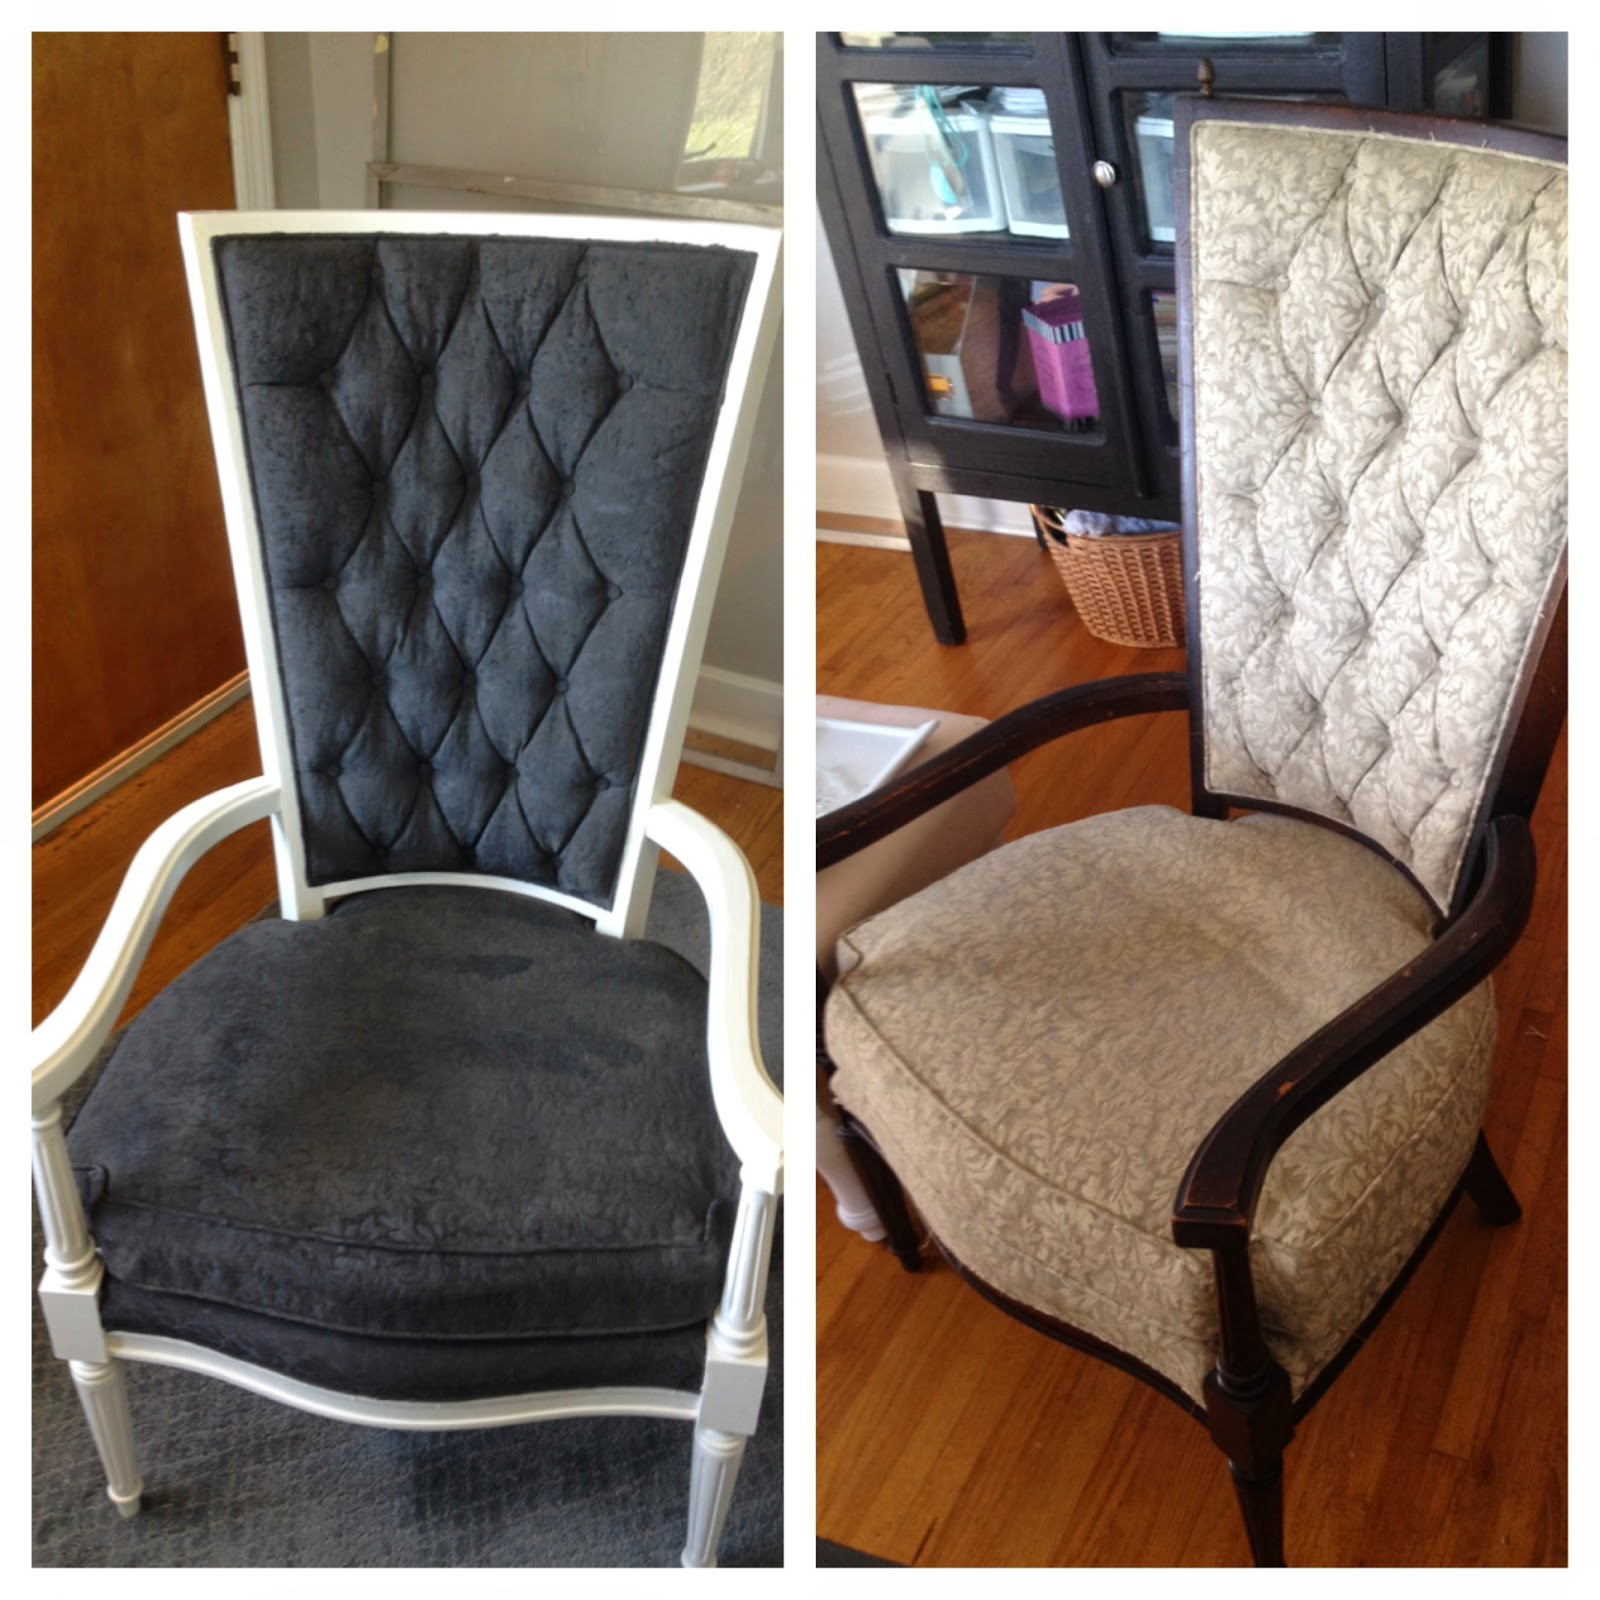 Furniture Upholstry: Blissfully Chic DIY: The Painted Chairs (Painting Over Fabric